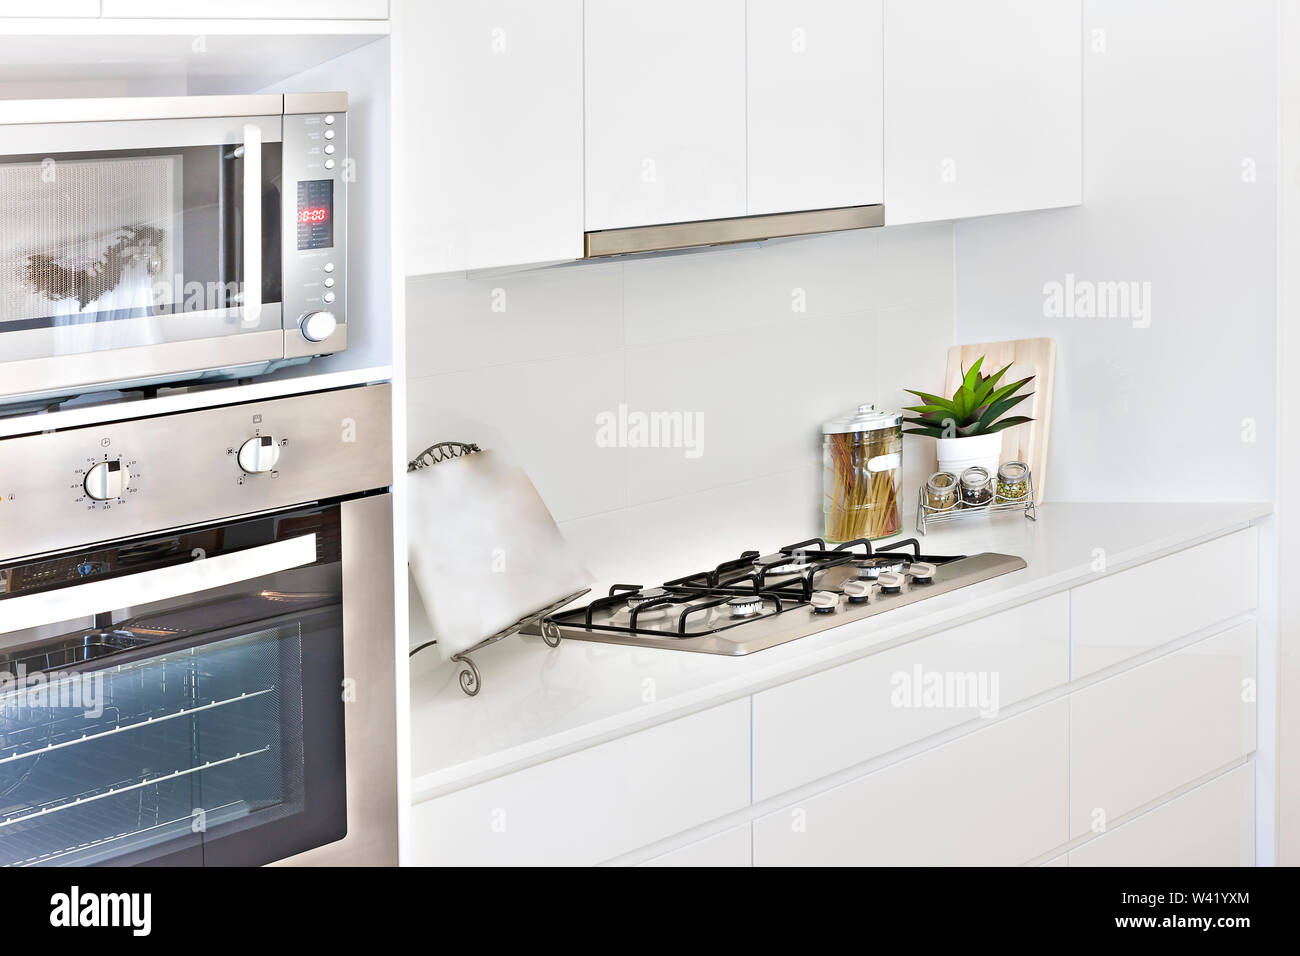 Modern Kitchen tools with white walls and oven, gas cooker also